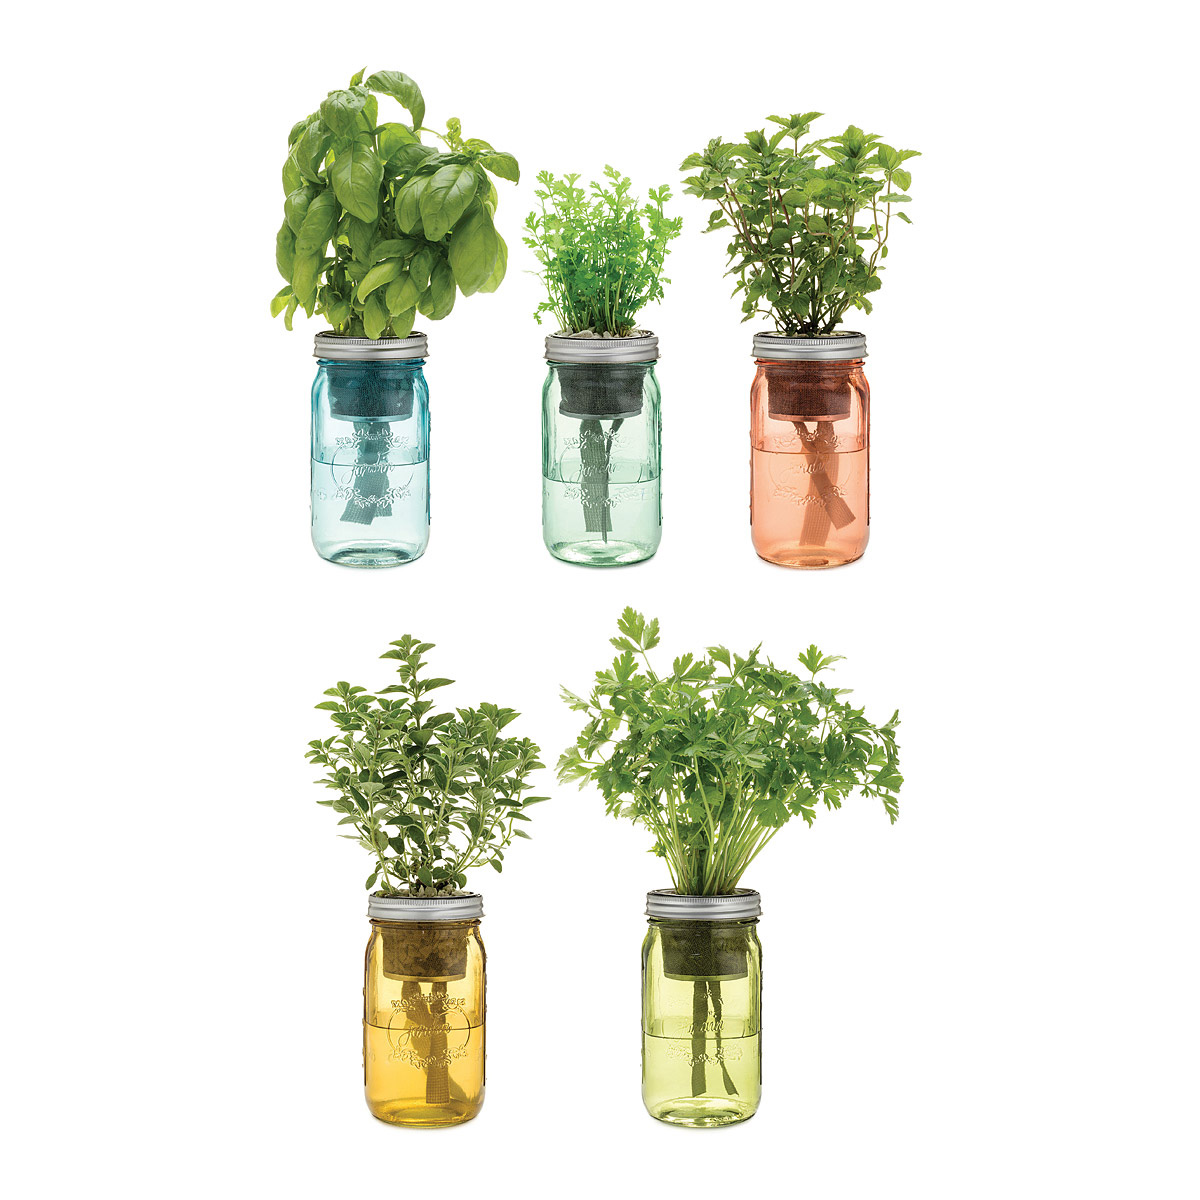 Self Watering Indoor Planters Part - 37: Self-Watering Mason Jar Indoor Herb Garden